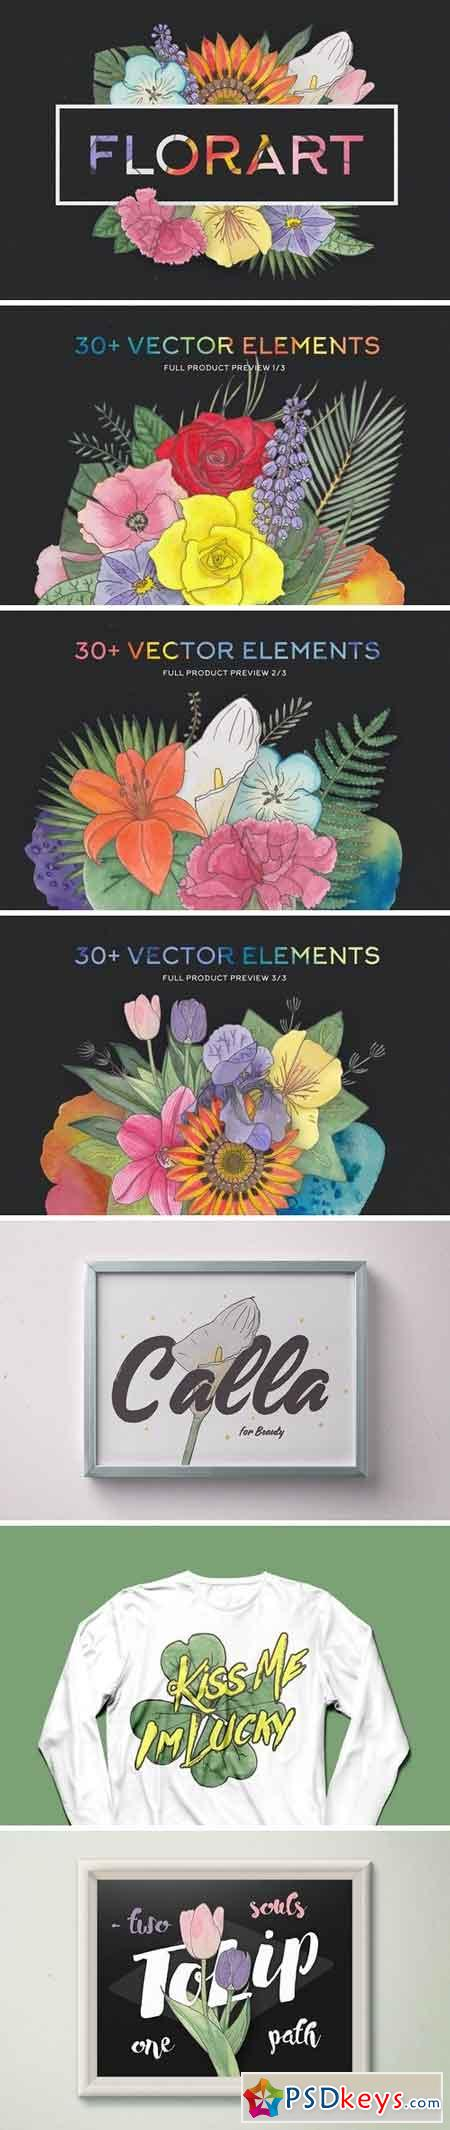 FlorArt Watercolor Kit 725744